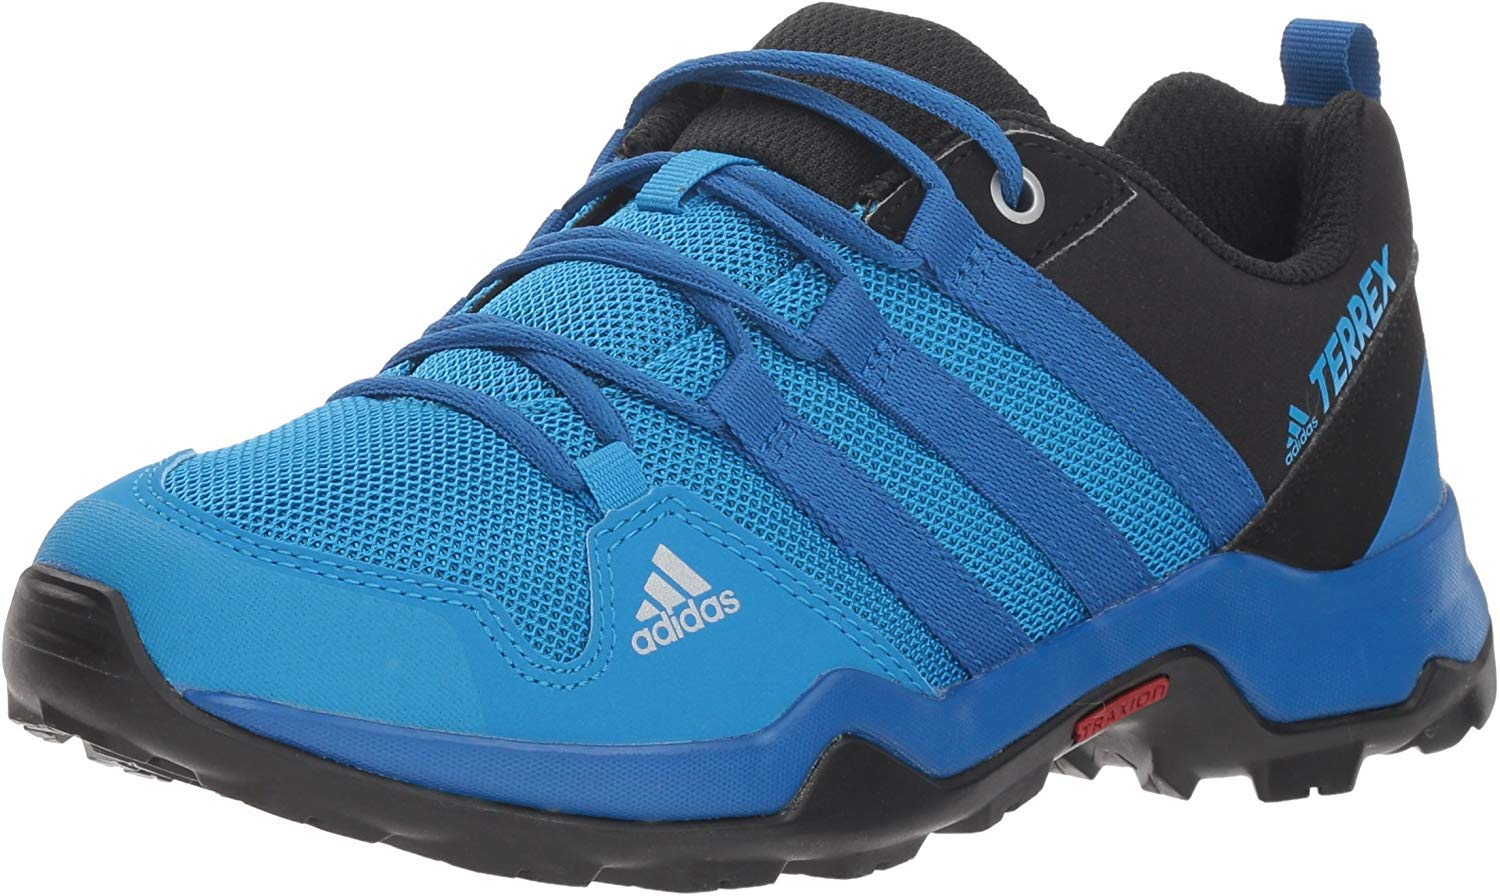 adidas outdoor Kids' Terrex Ax2r Hiking Boot